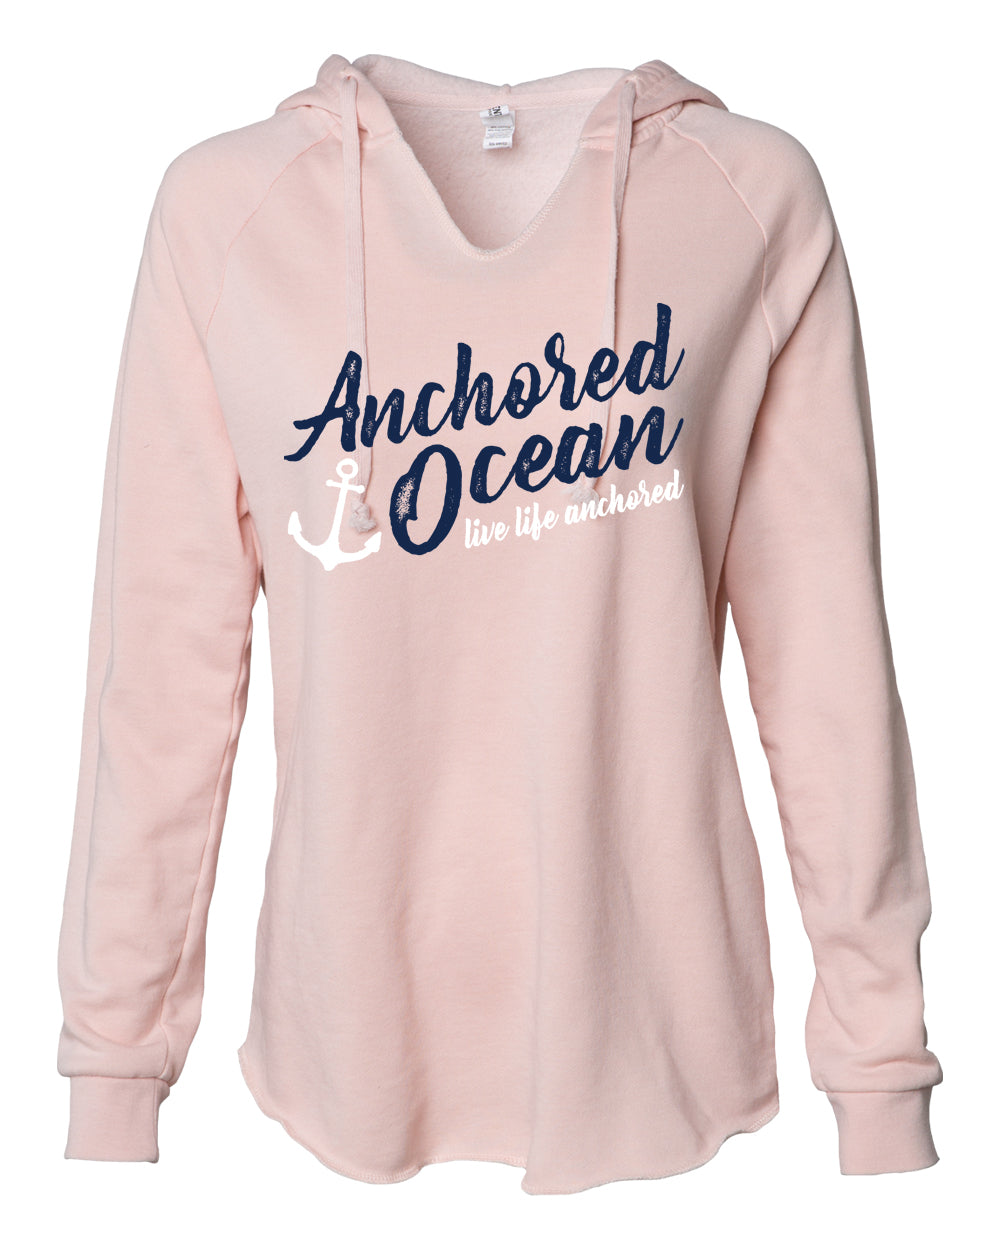 Anchor Off Shoulder Sweatshirt for Women White Anchor Oversized Sweater Boat Anchor Sweatshirt Marine Gifts for Her Women/'s Navy Sweater